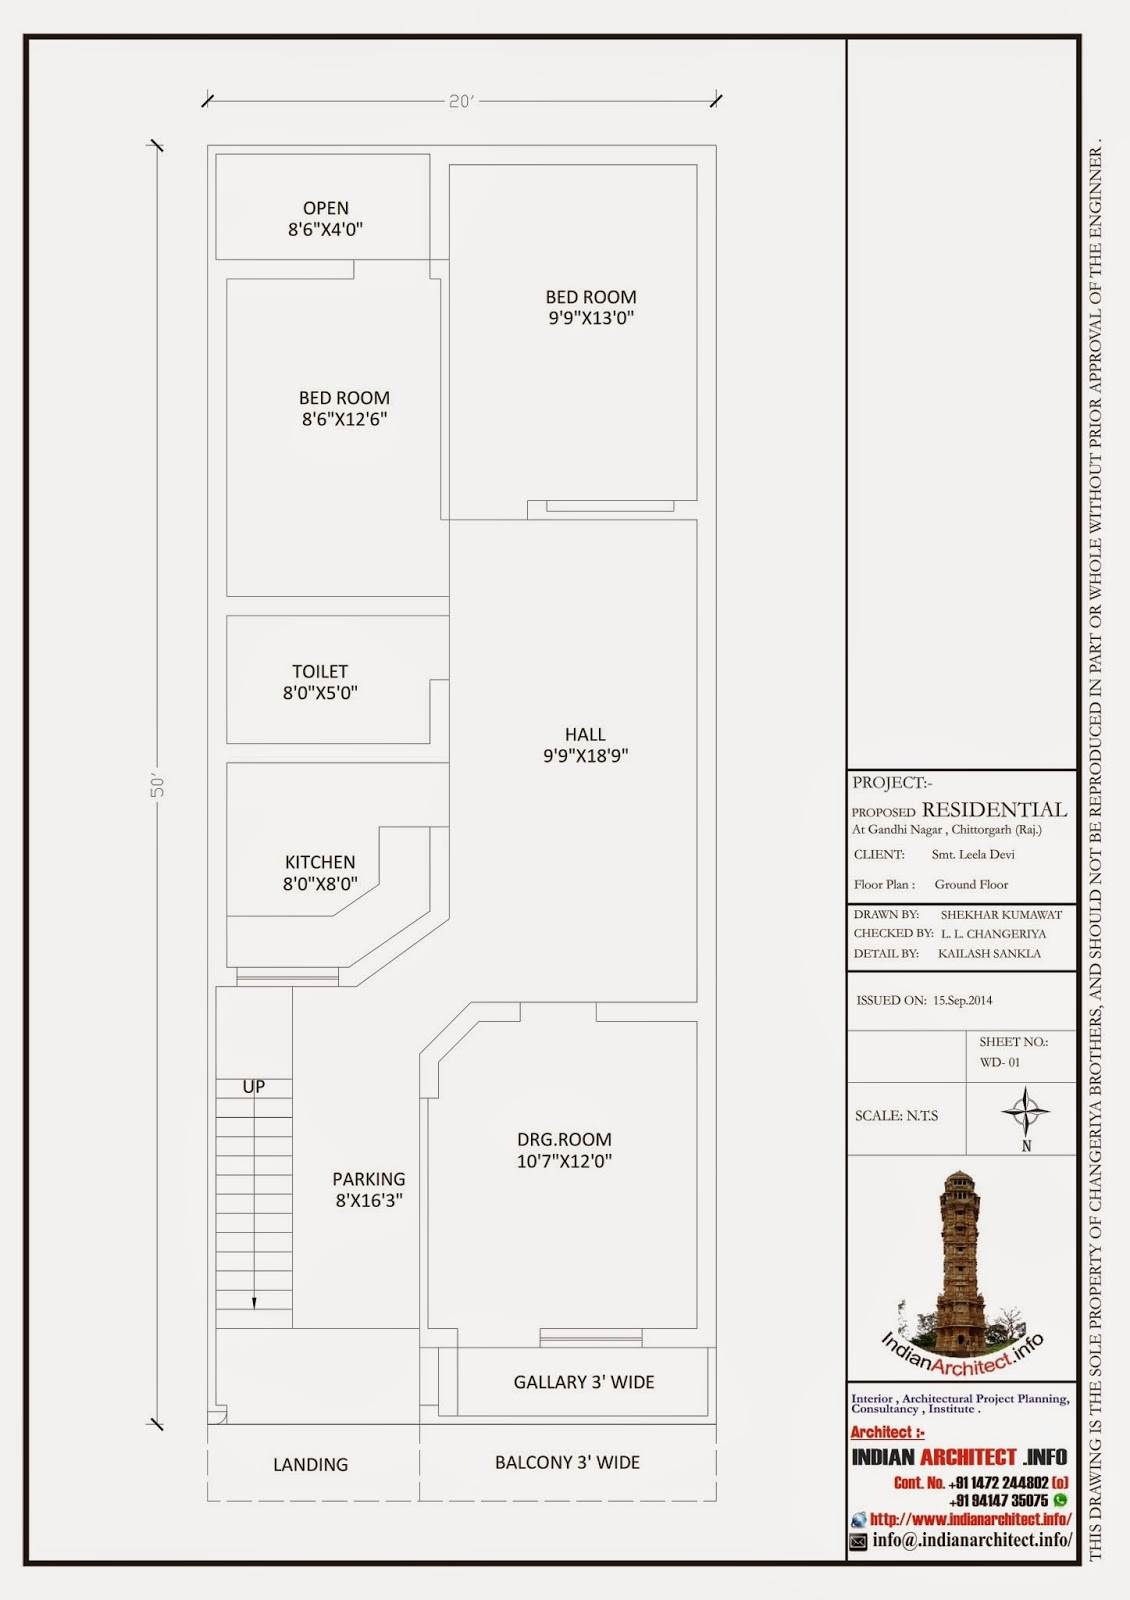 Smt. Leela Devi House 20' x 50' 1000 Sqft Floor Plan and ...